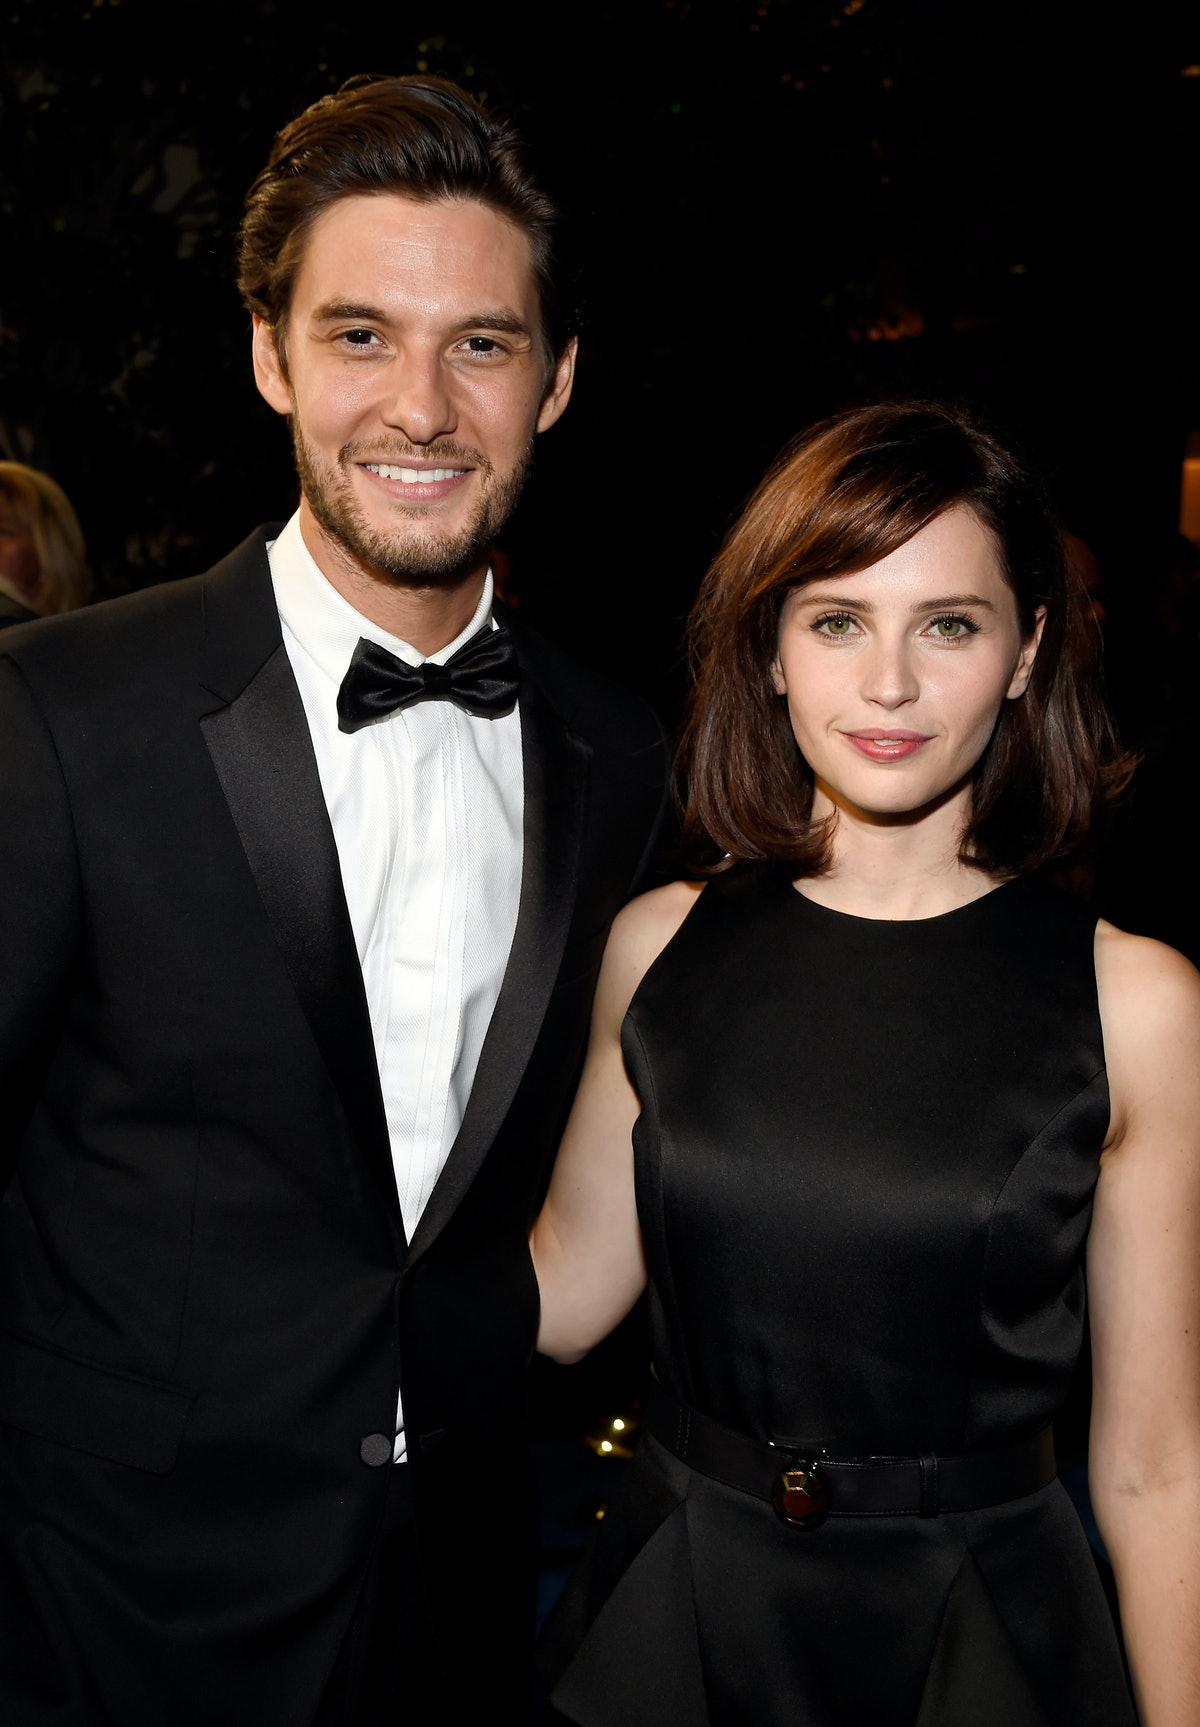 BEVERLY HILLS, CA - OCTOBER 30:  Actors Ben Barnes (L) and Felicity Jones attend the BAFTA Los Angeles Jaguar Britannia Awards presented by BBC America and United Airlines at The Beverly Hilton Hotel on October 30, 2014 in Beverly Hills, California.  (Photo by Frazer Harrison/BAFTA LA/Getty Images for BAFTA LA)